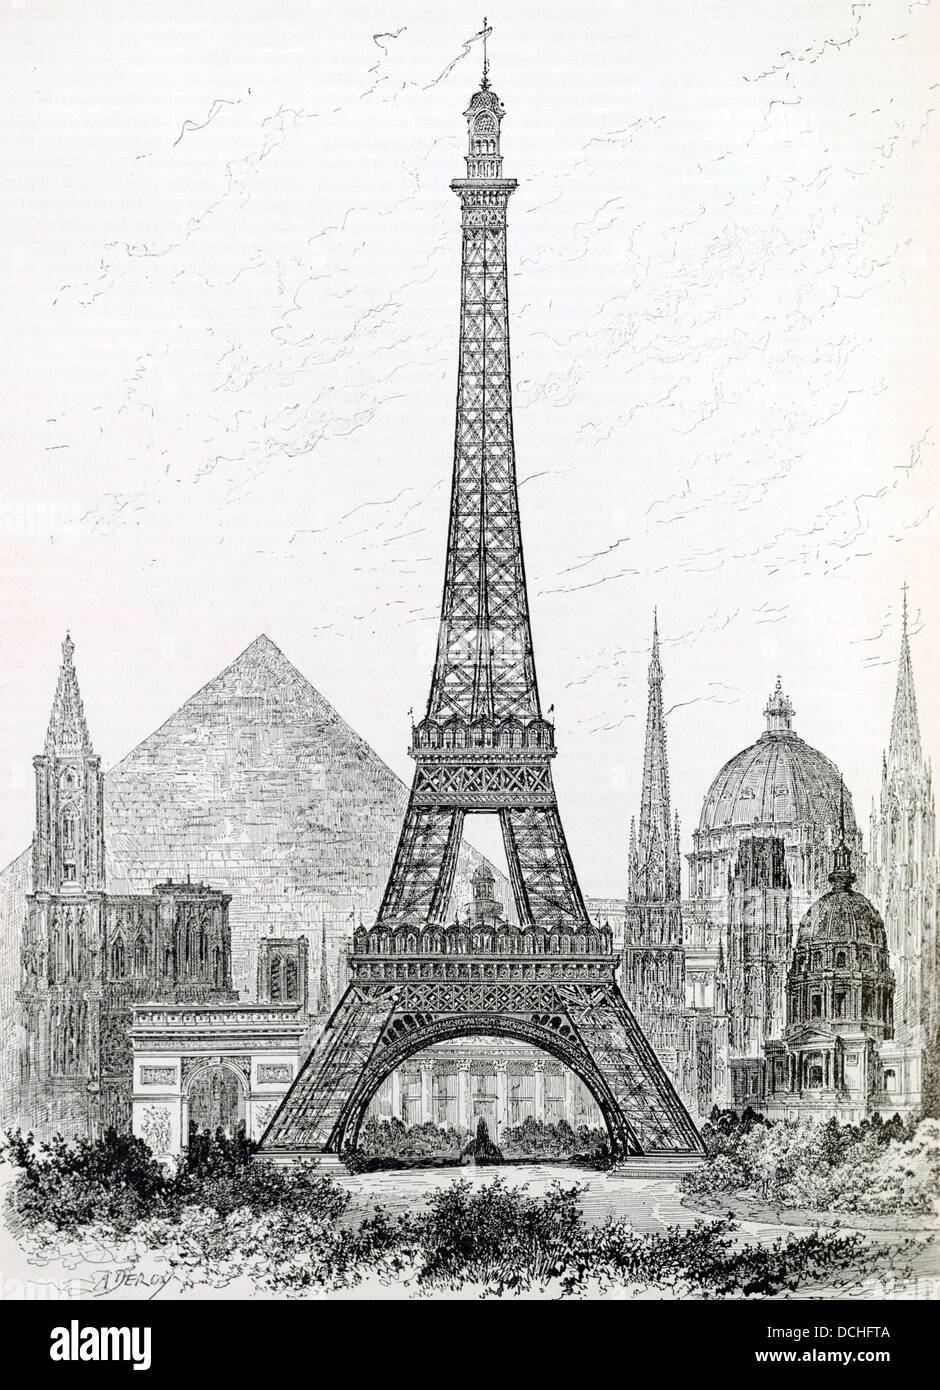 Eiffel tower drawing stock photos eiffel tower drawing stock 1890 drawing comparing the height of the eiffel tower with other world landmarks stock image thecheapjerseys Gallery